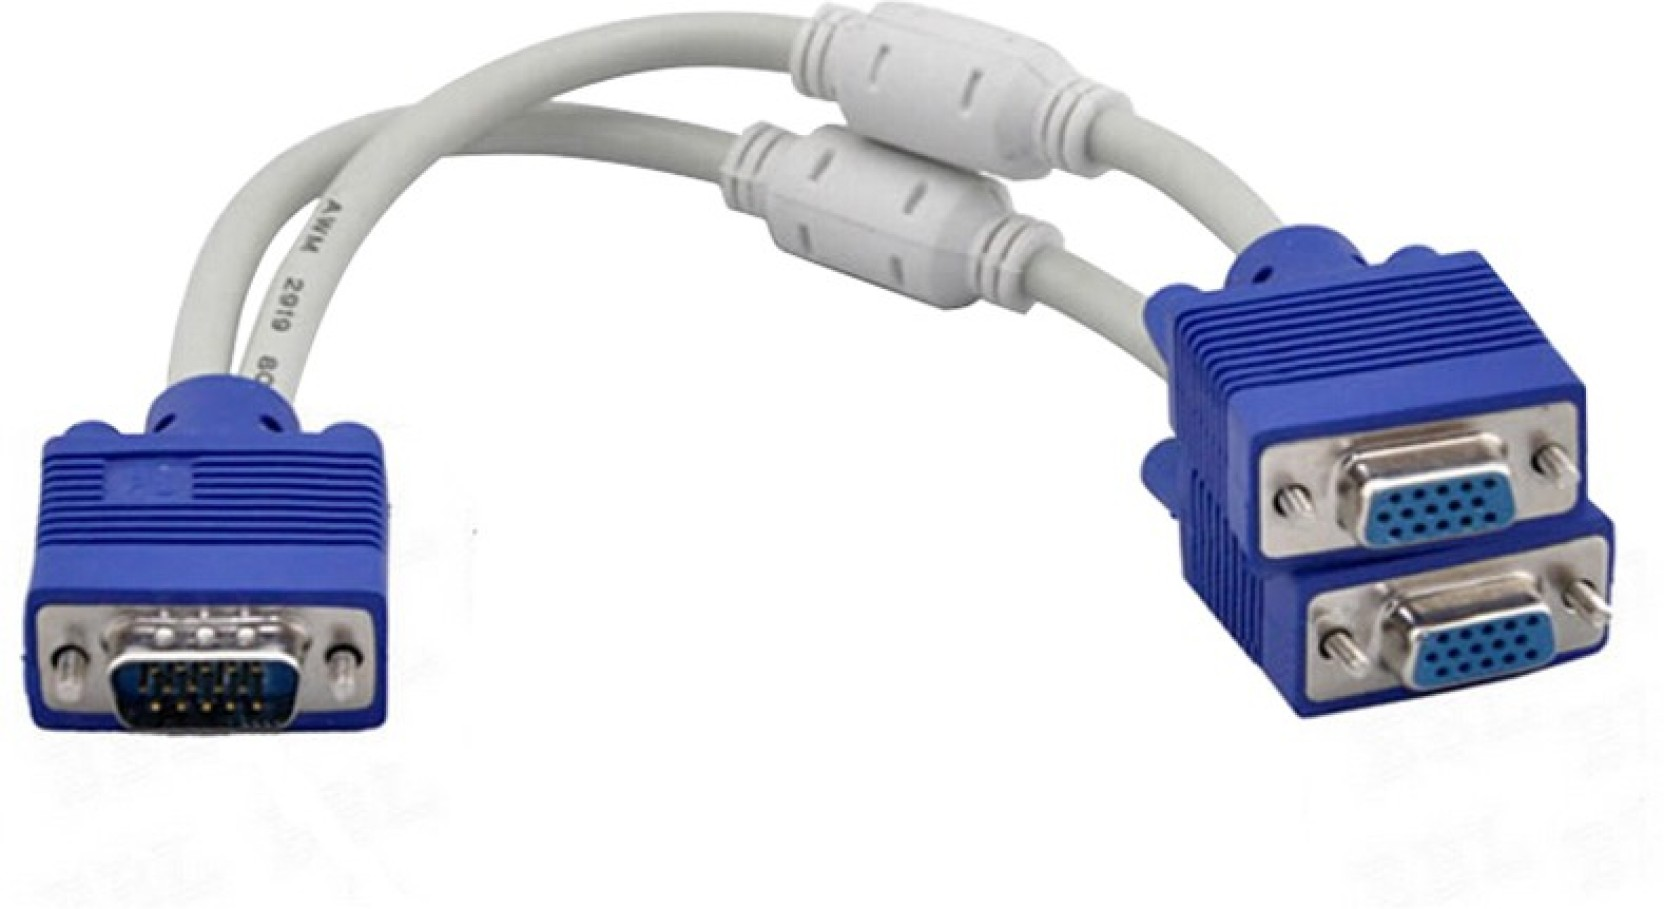 99 Gems High Quality 1 Computer To Dual 2 Monitor Vga Splitter Cable Converter Port Spliter Video Y Add Cart